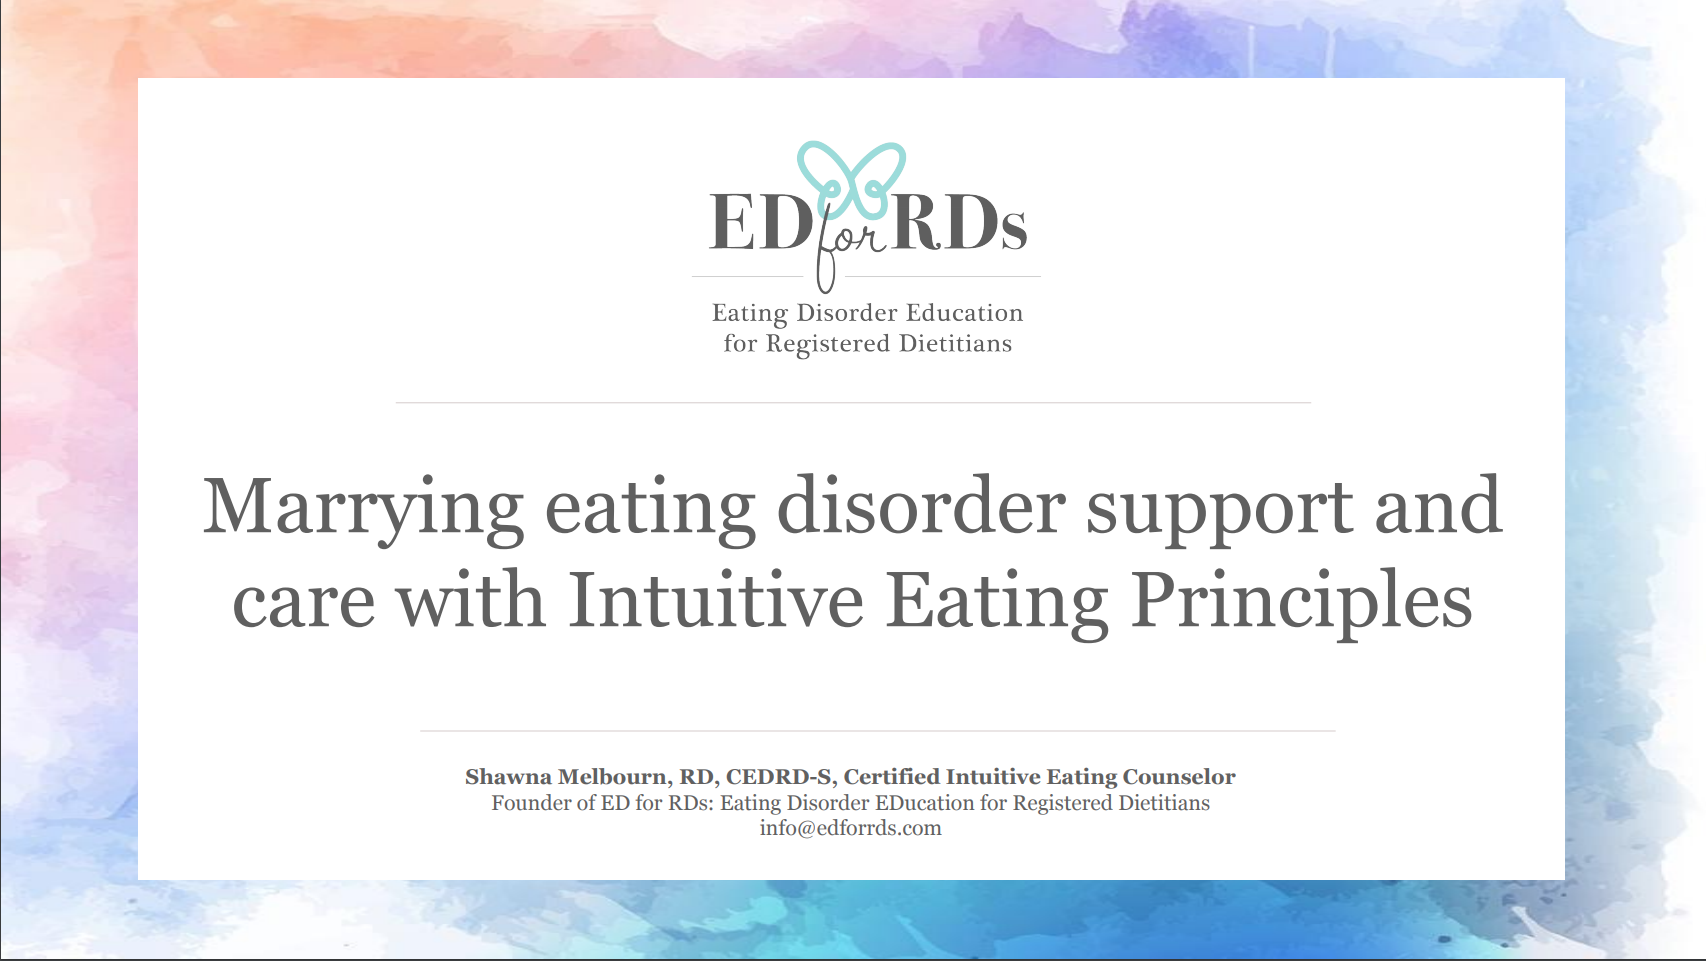 Webinar: Marrying Eating Disorder Treatment and Care with Intuitive Eating Principles